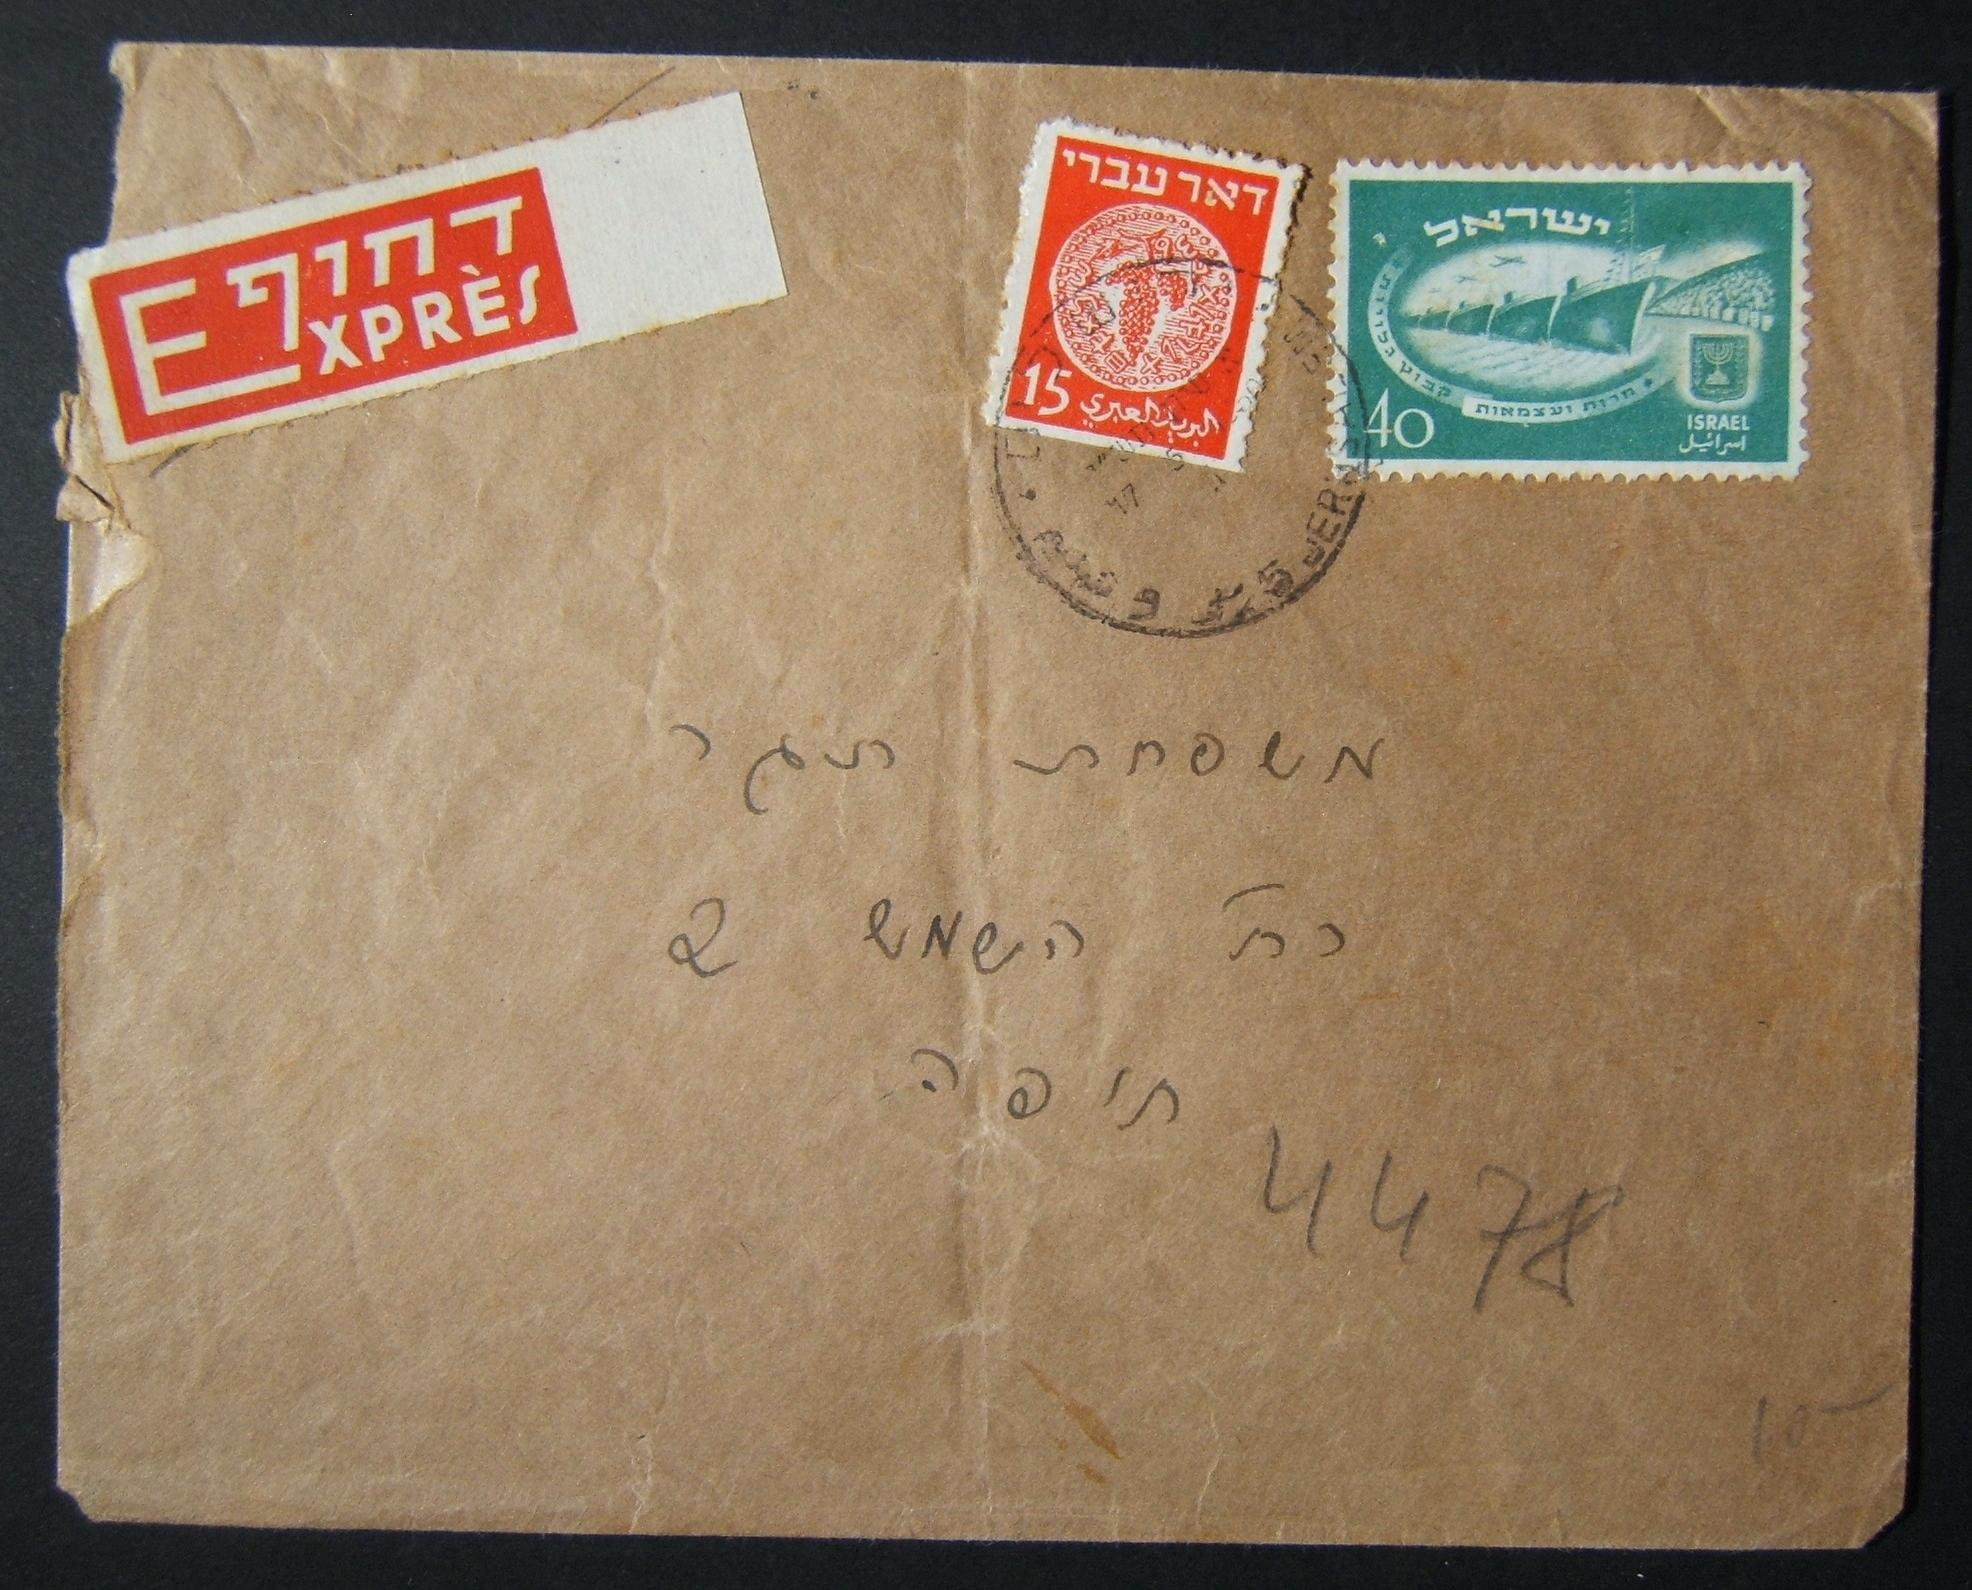 1950 Independence / rates & routes: 17-5-1950 express cover ex JERUSALEM to HAIFA franked 55pr at the DO-2 period domestic rate (15pr letter + 40pr express) using mix of 40pr (Ba30